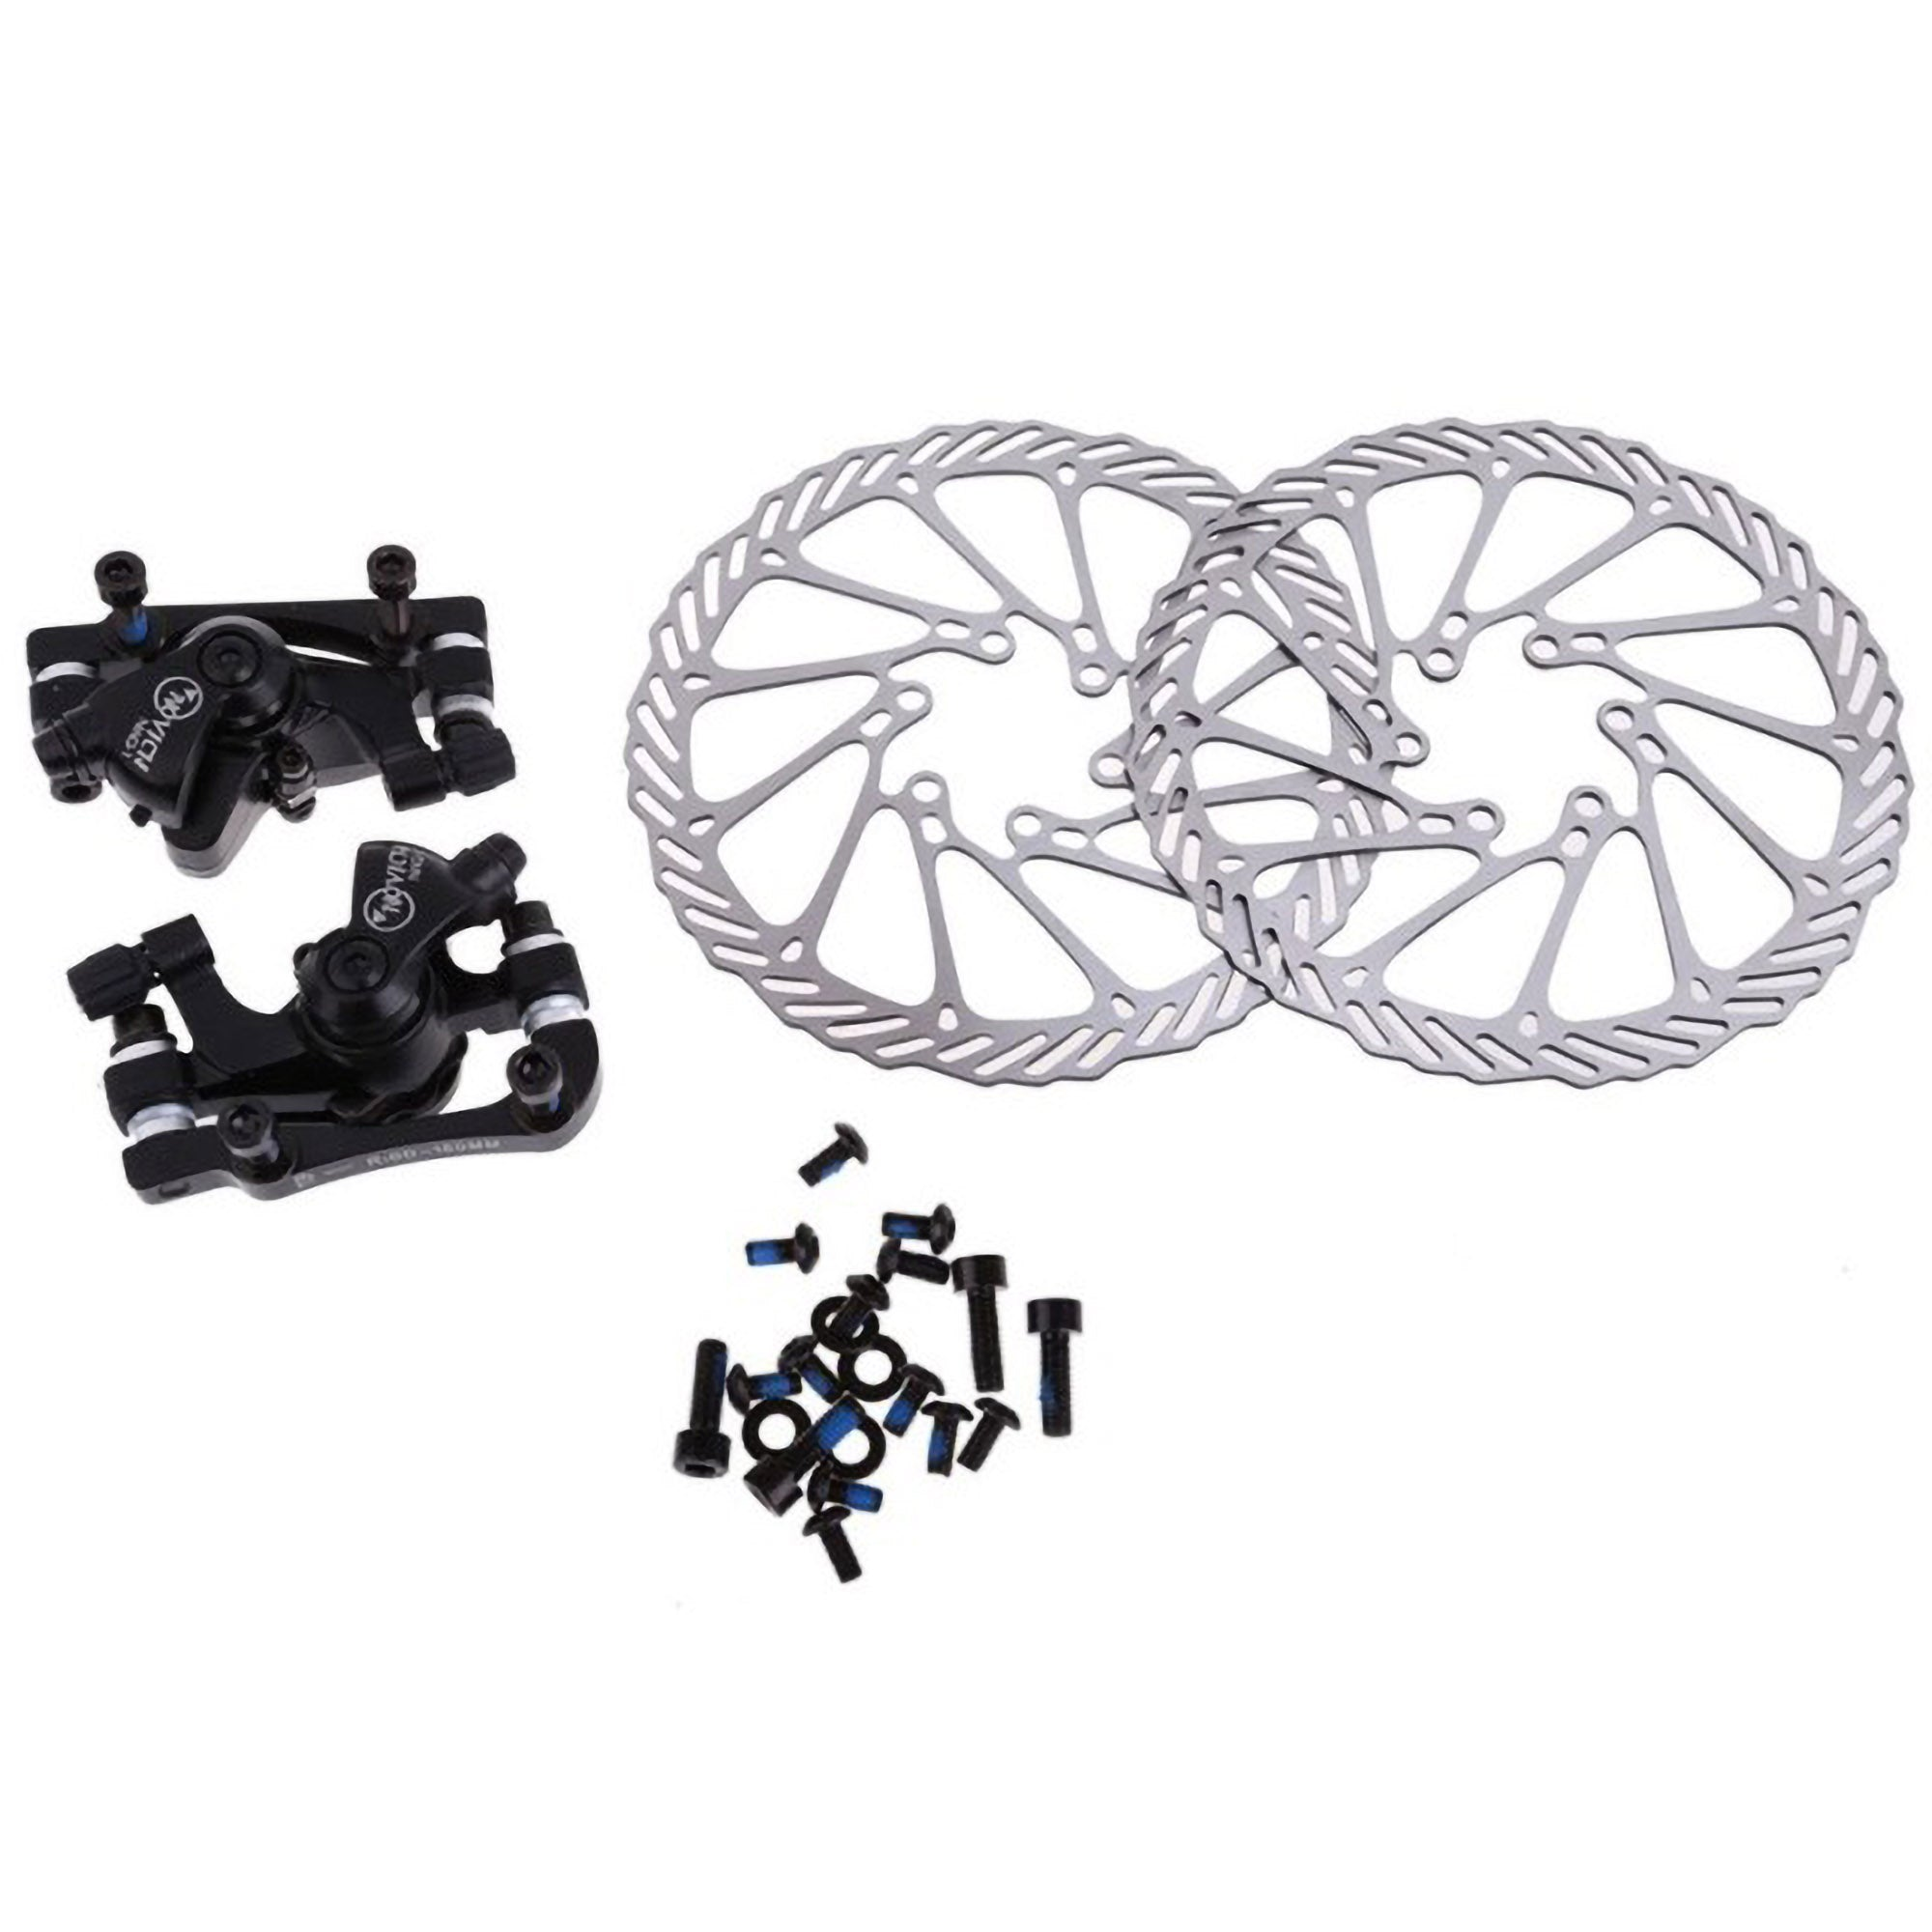 Cycling Bicycle Disc Brakes Set Kit G3 Rotors 160mm Brake Levers Cableoption Ultra